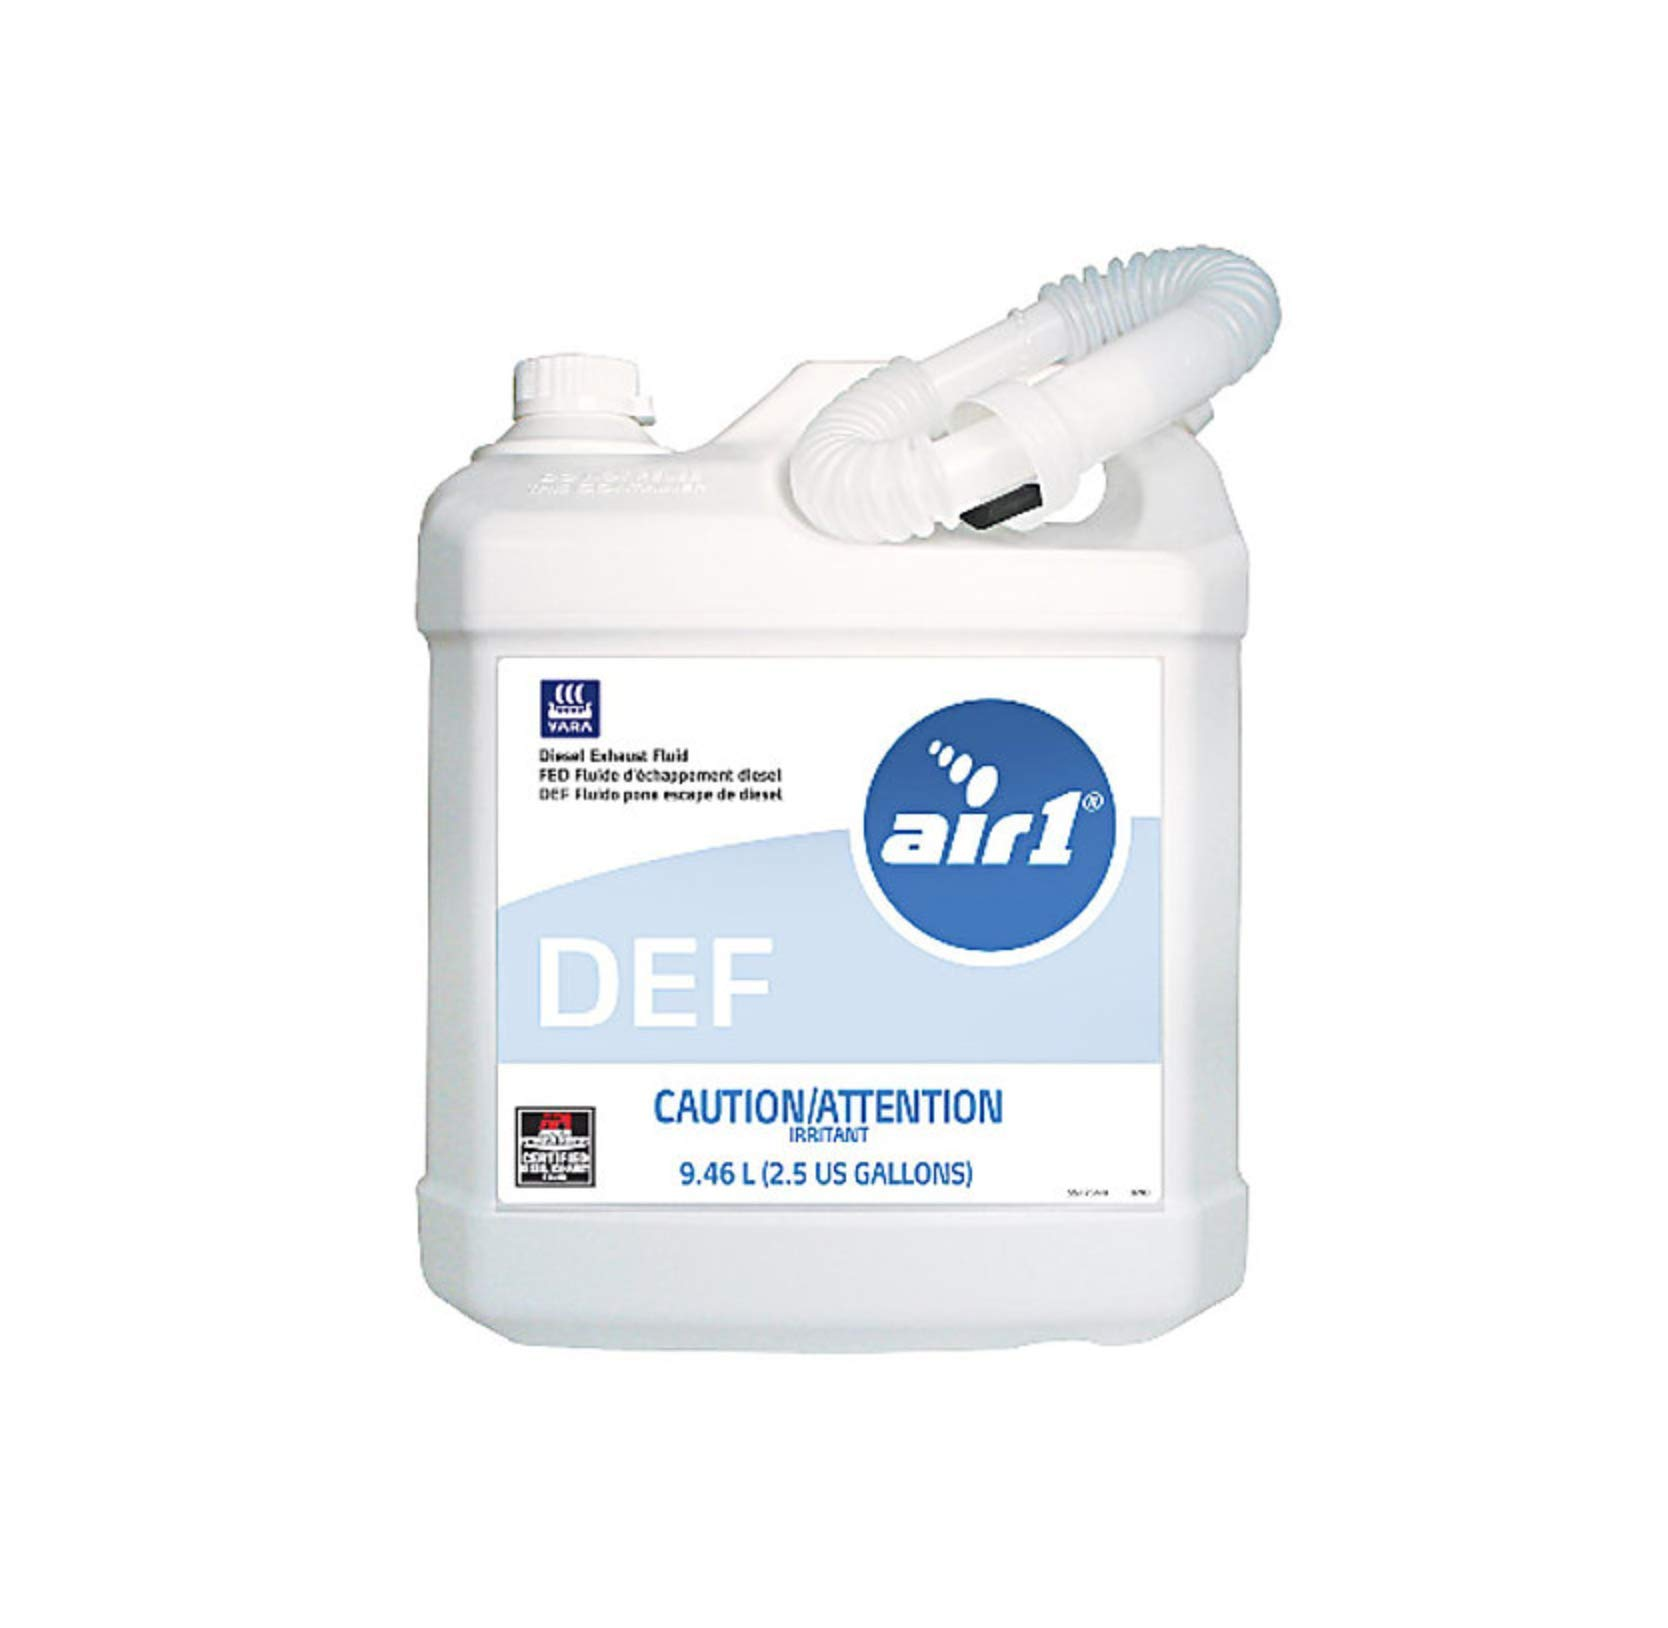 Air 1 Diesel Exhaust Fluid 96 Each x 2.5 Gallon Jugs by Silver Transfer STS-25NA2 (Lift GATE DEL) by Air 1 (Image #1)